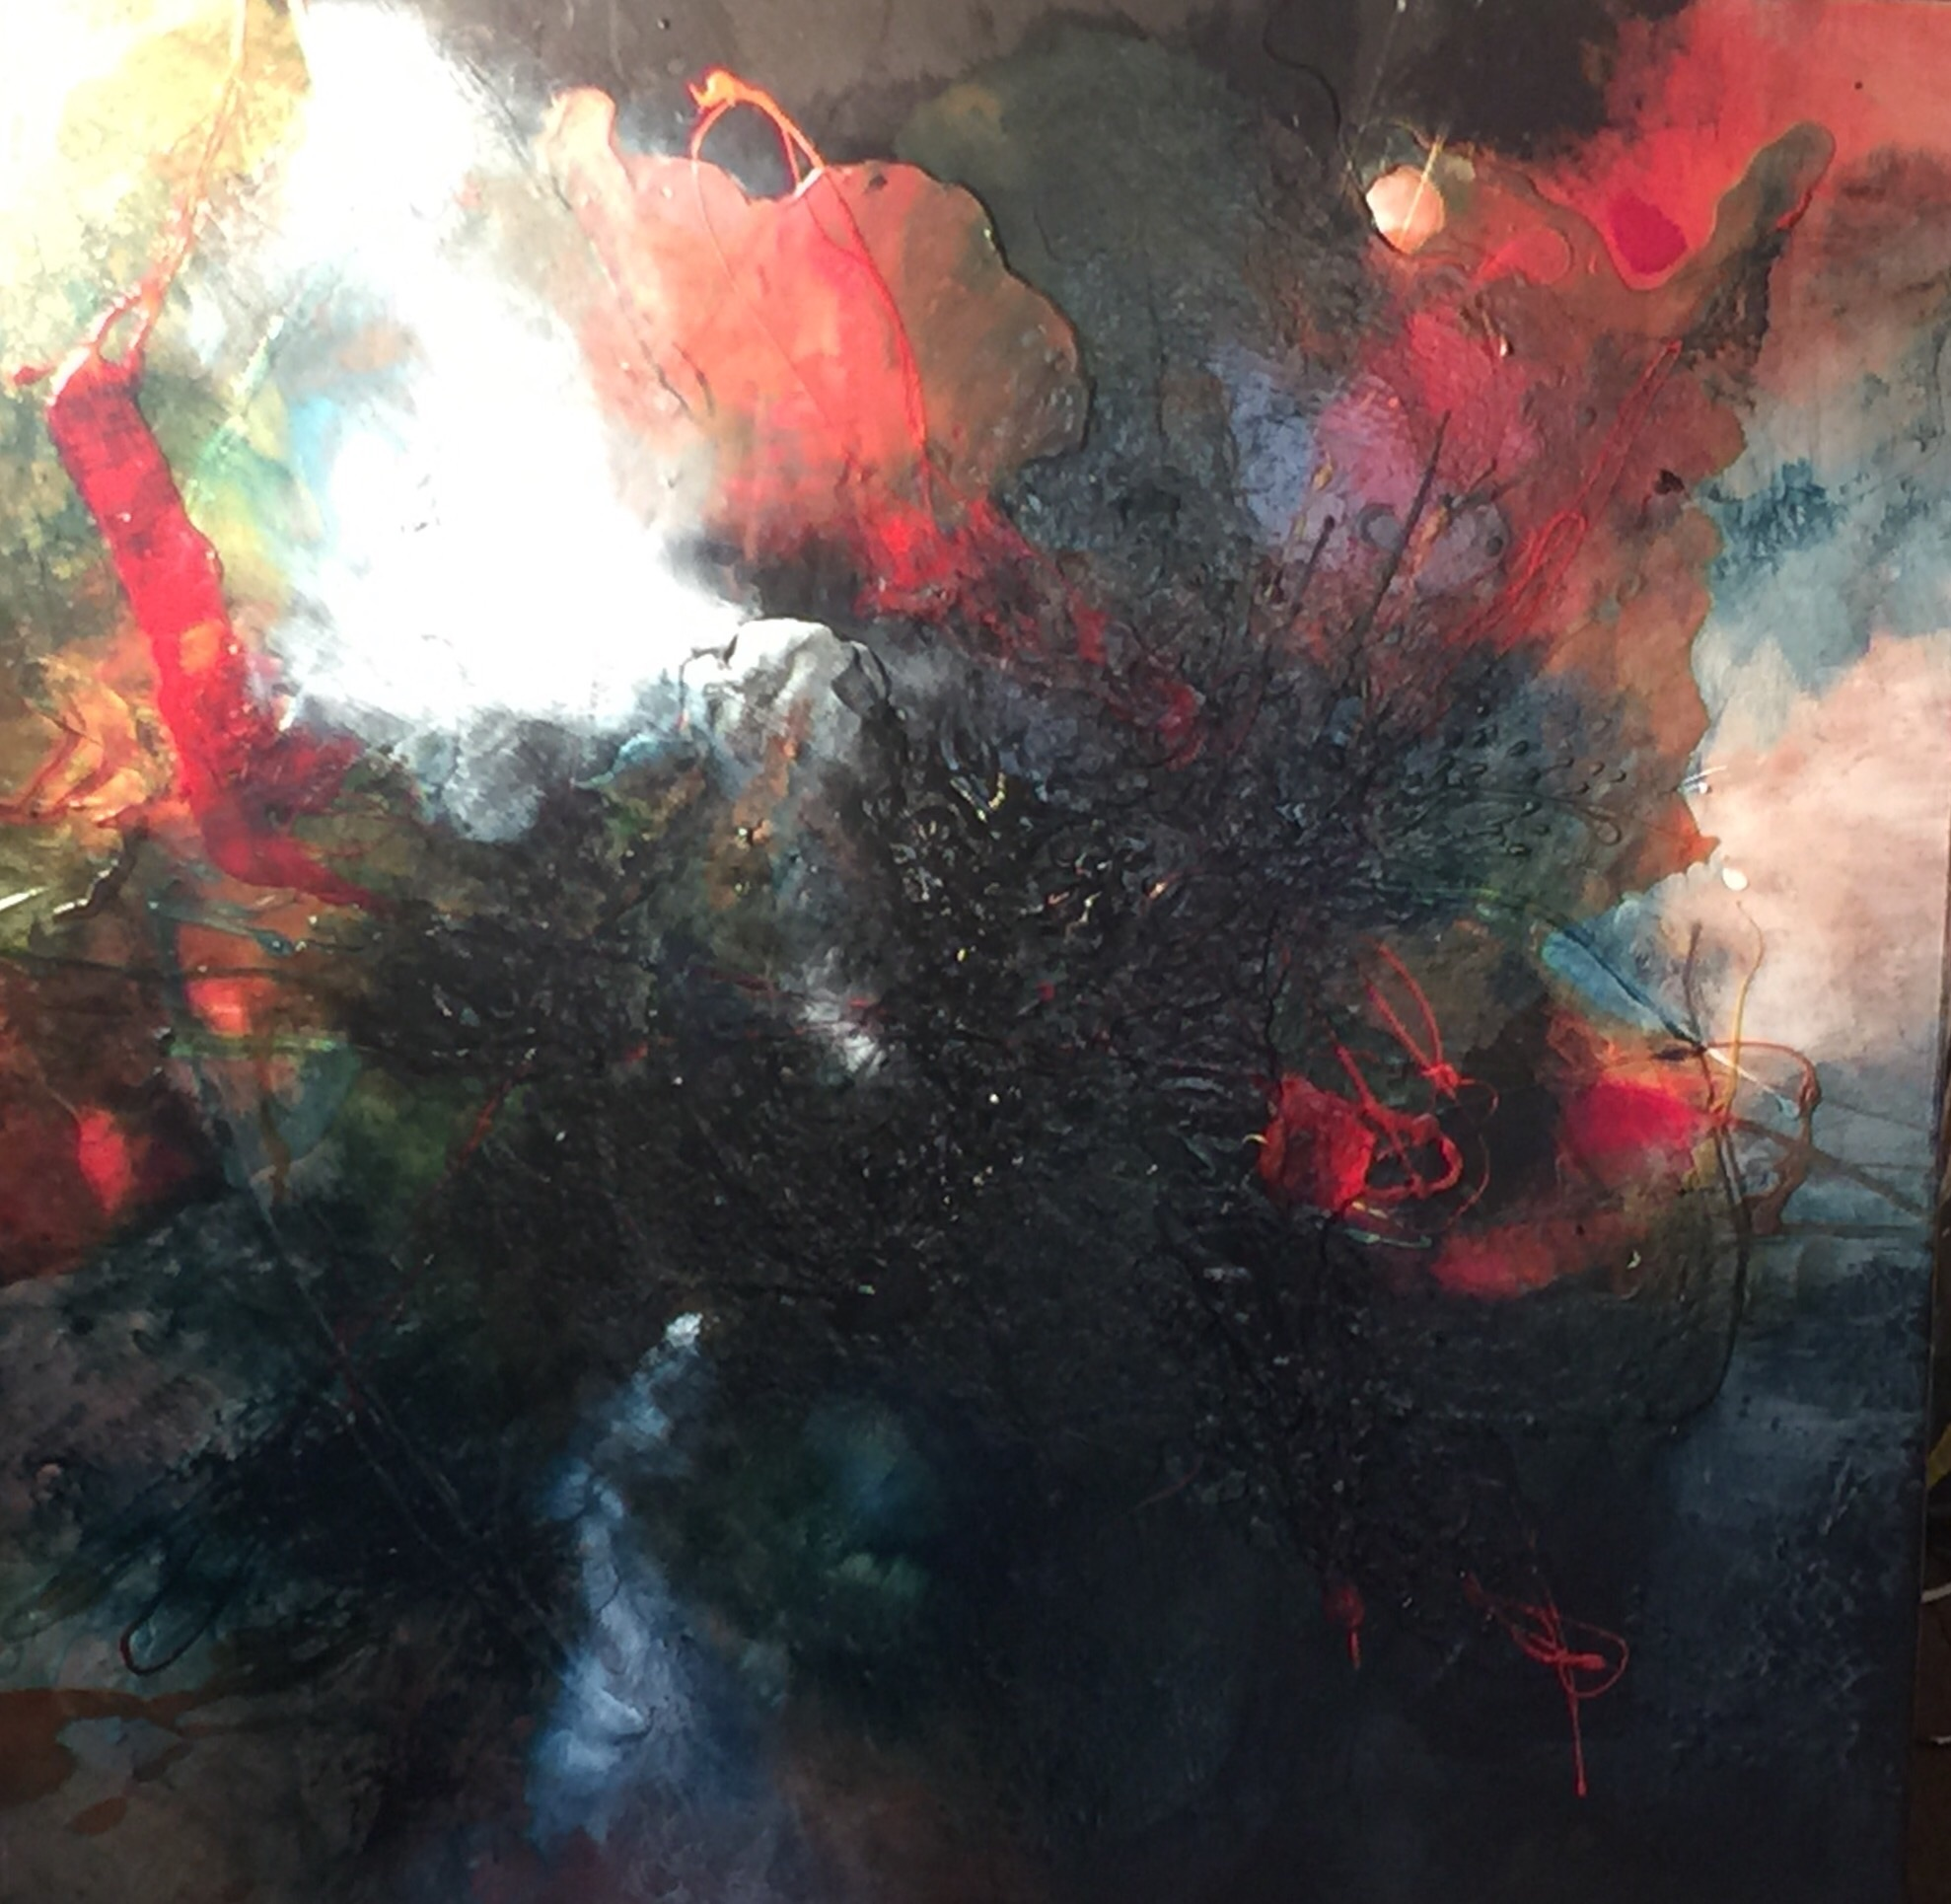 Implosion  artwork by Louise Hugo Hamman - art listed for sale on Artplode